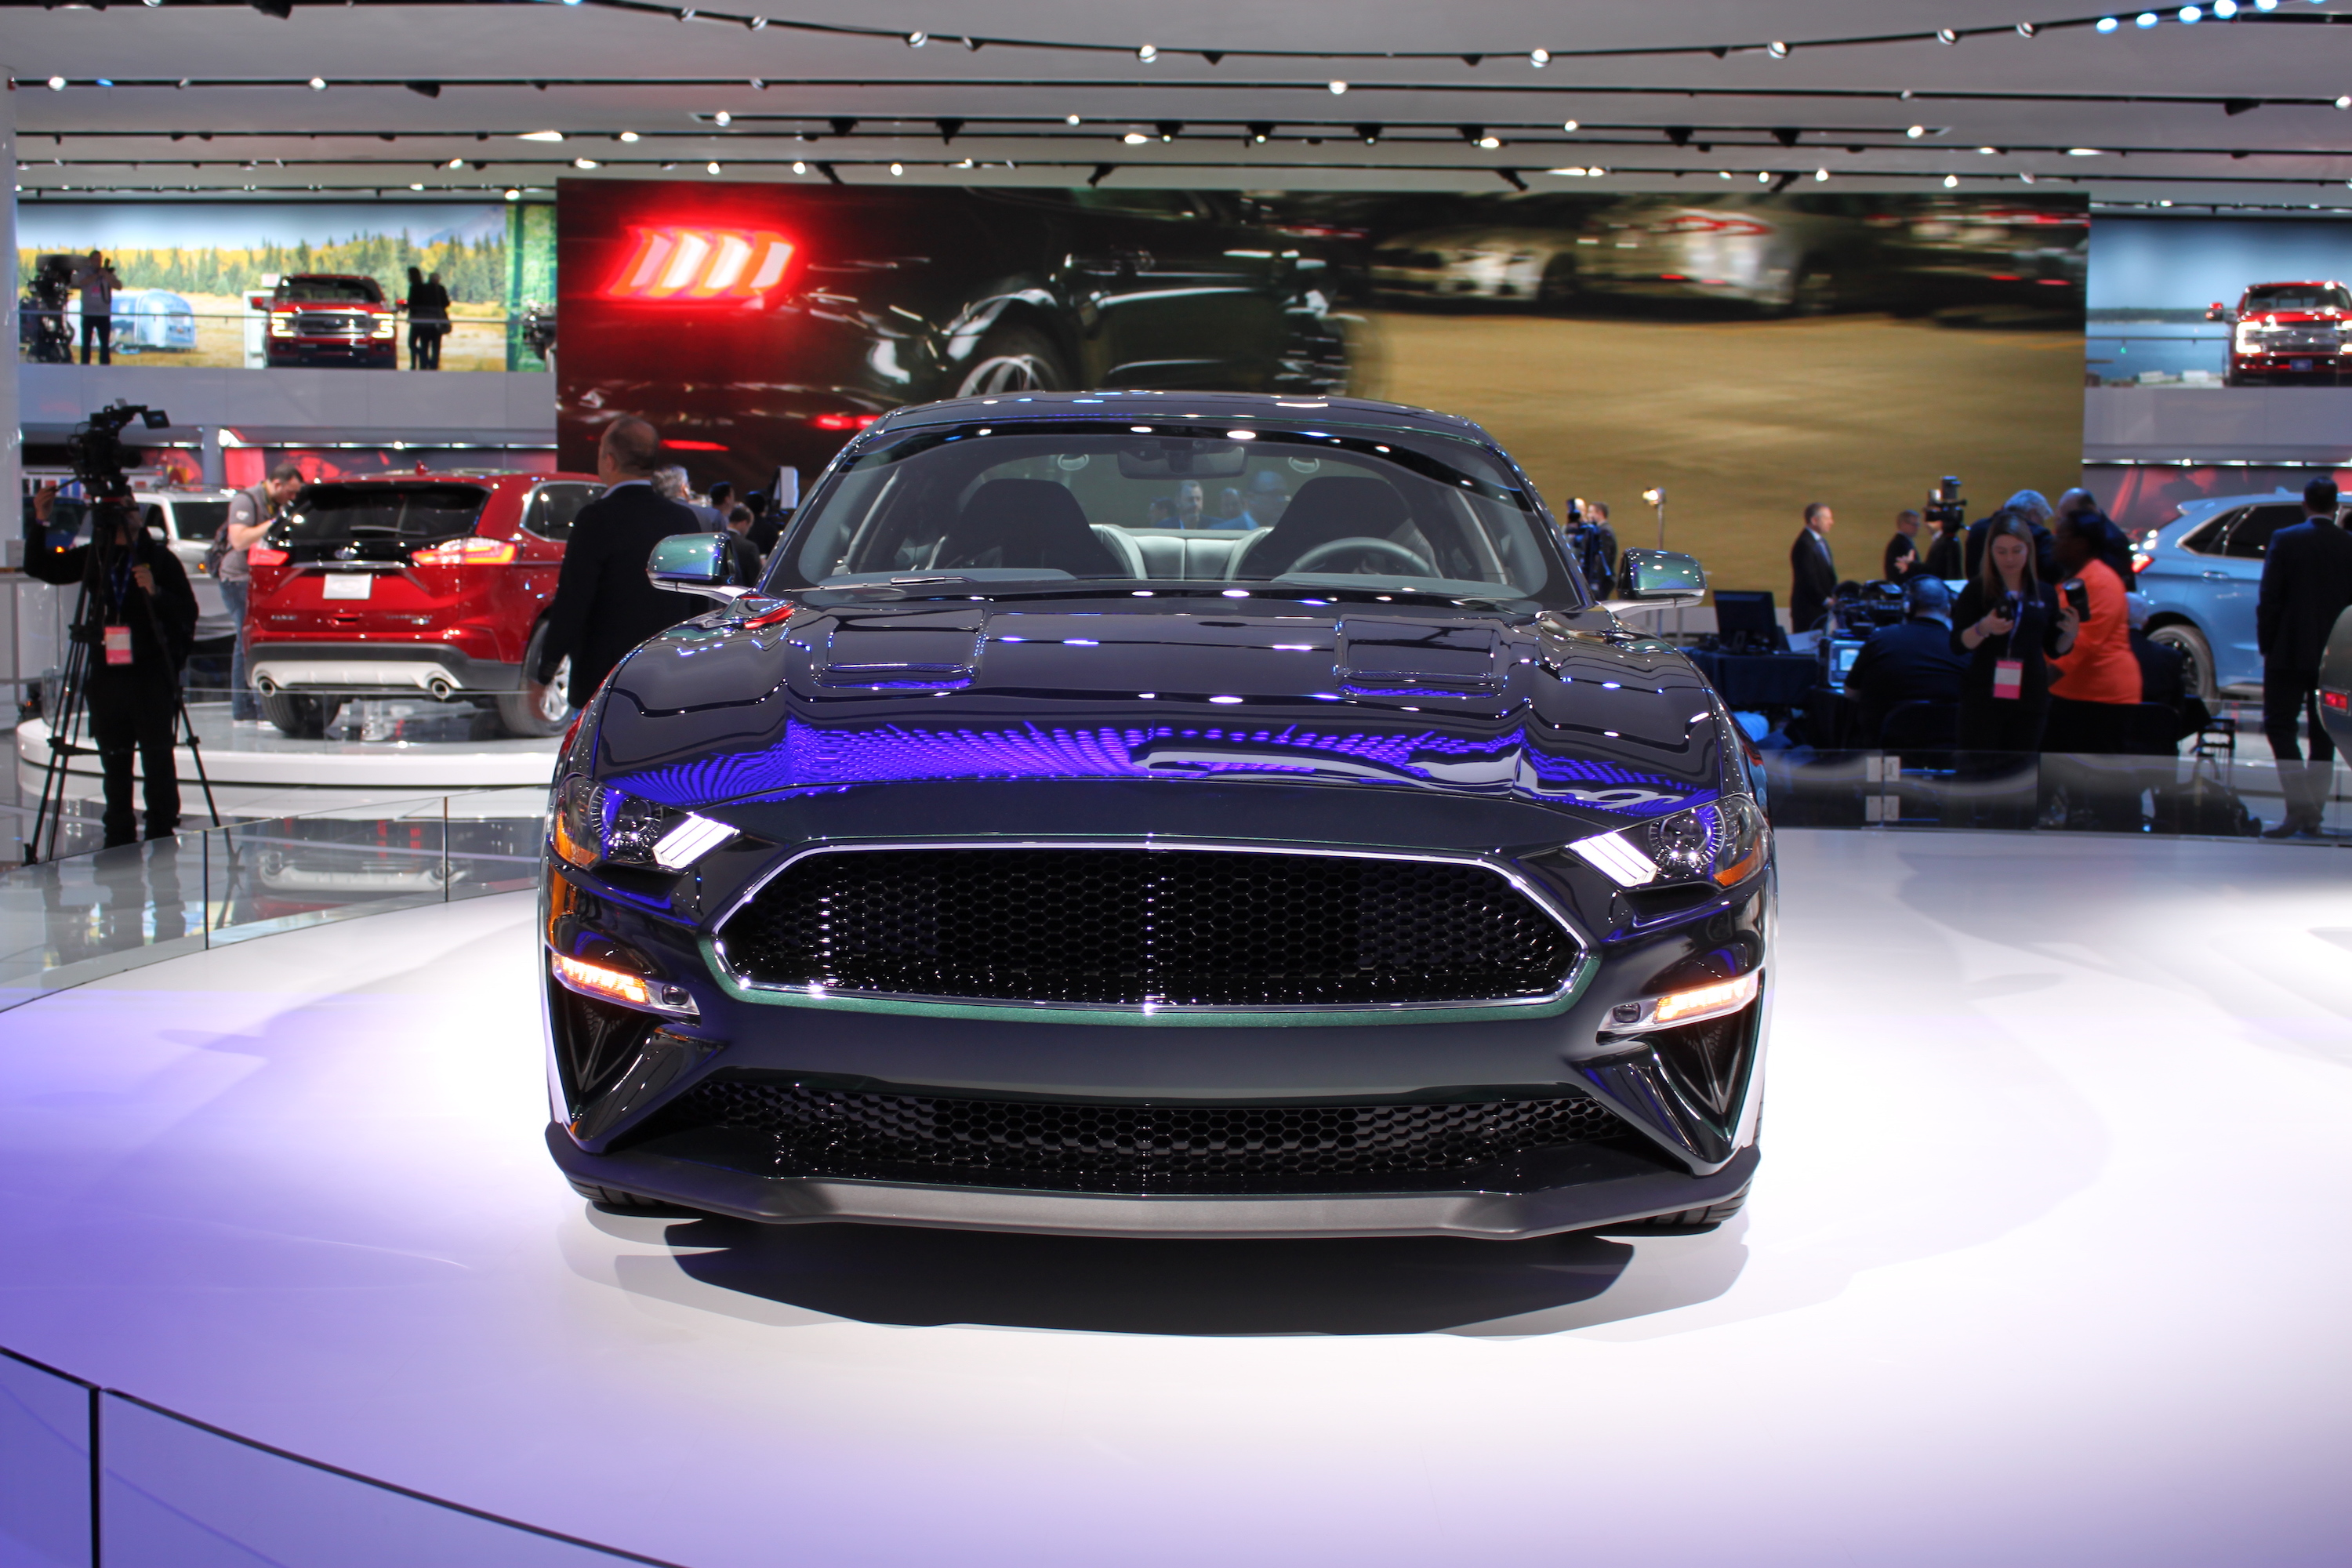 2019 Ford Mustang Bullitt Debuts with Sinister Looks and 475-HP V8 » AutoGuide.com News